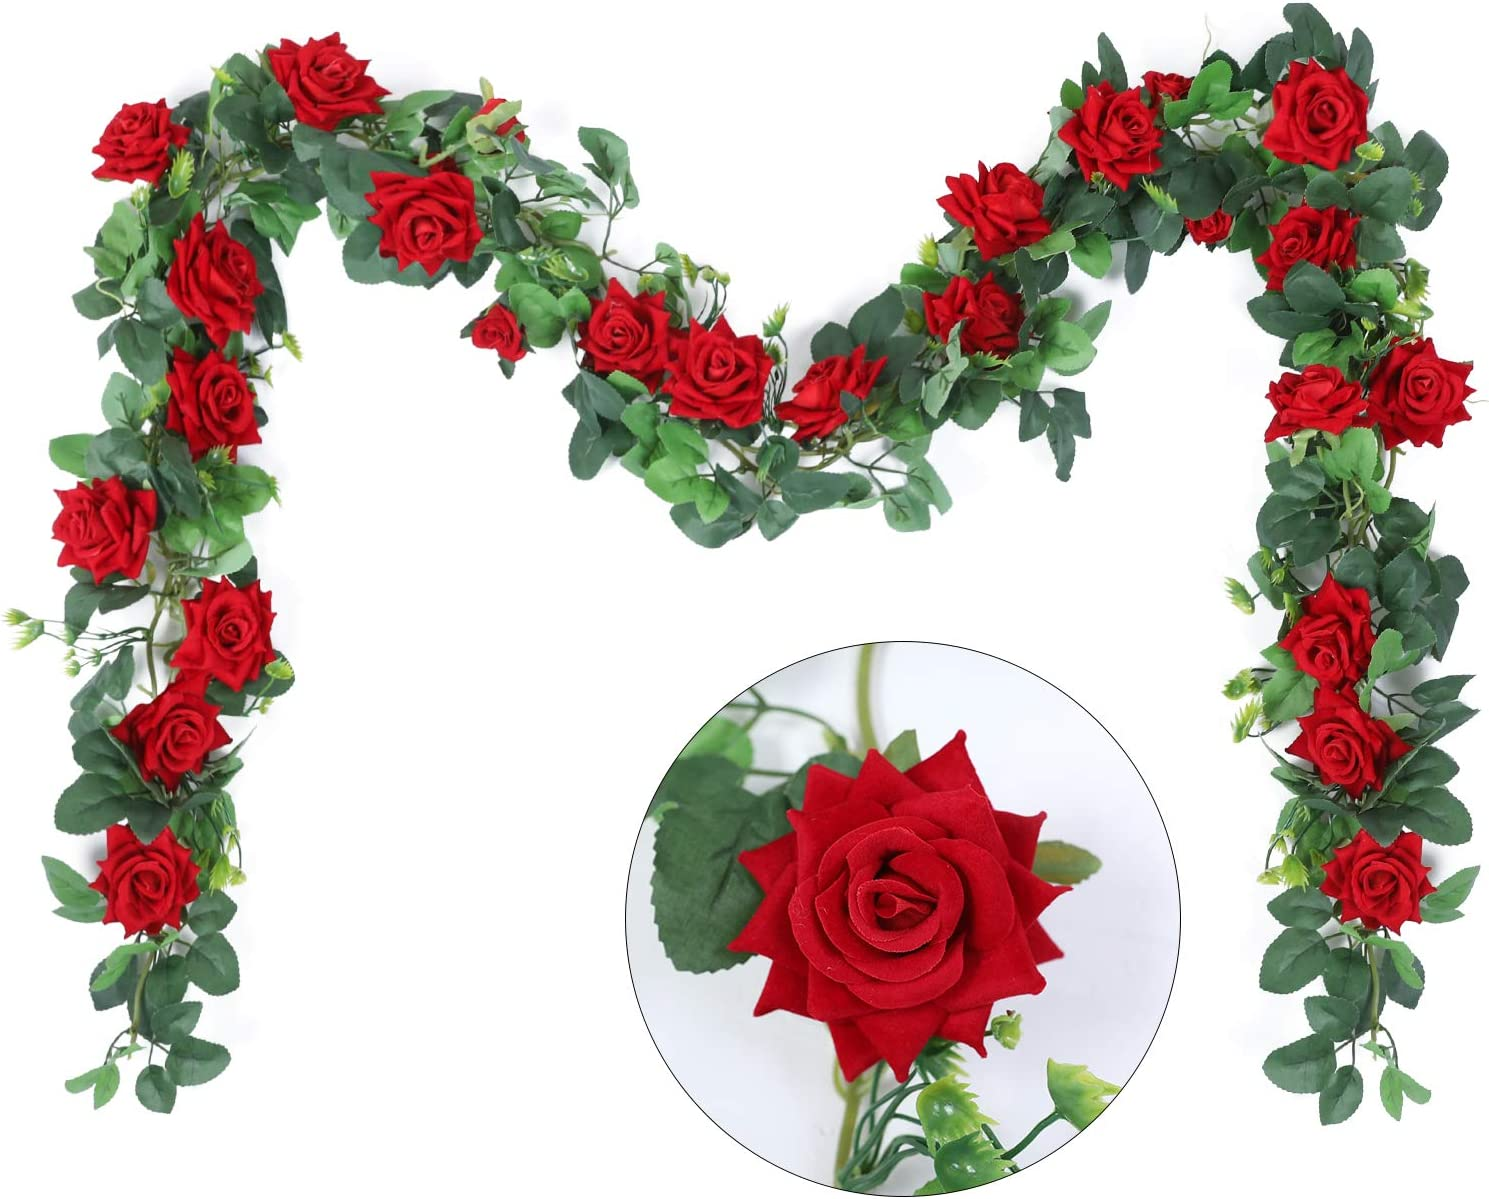 Hobyhoon Artificial Rose Vines Flowers Garland 5.6ft Silk Velvet Rose Vines Fake Hanging Rose Ivy Plant for Wedding Party Home Wall Garden Decorations (Red-3pcs)